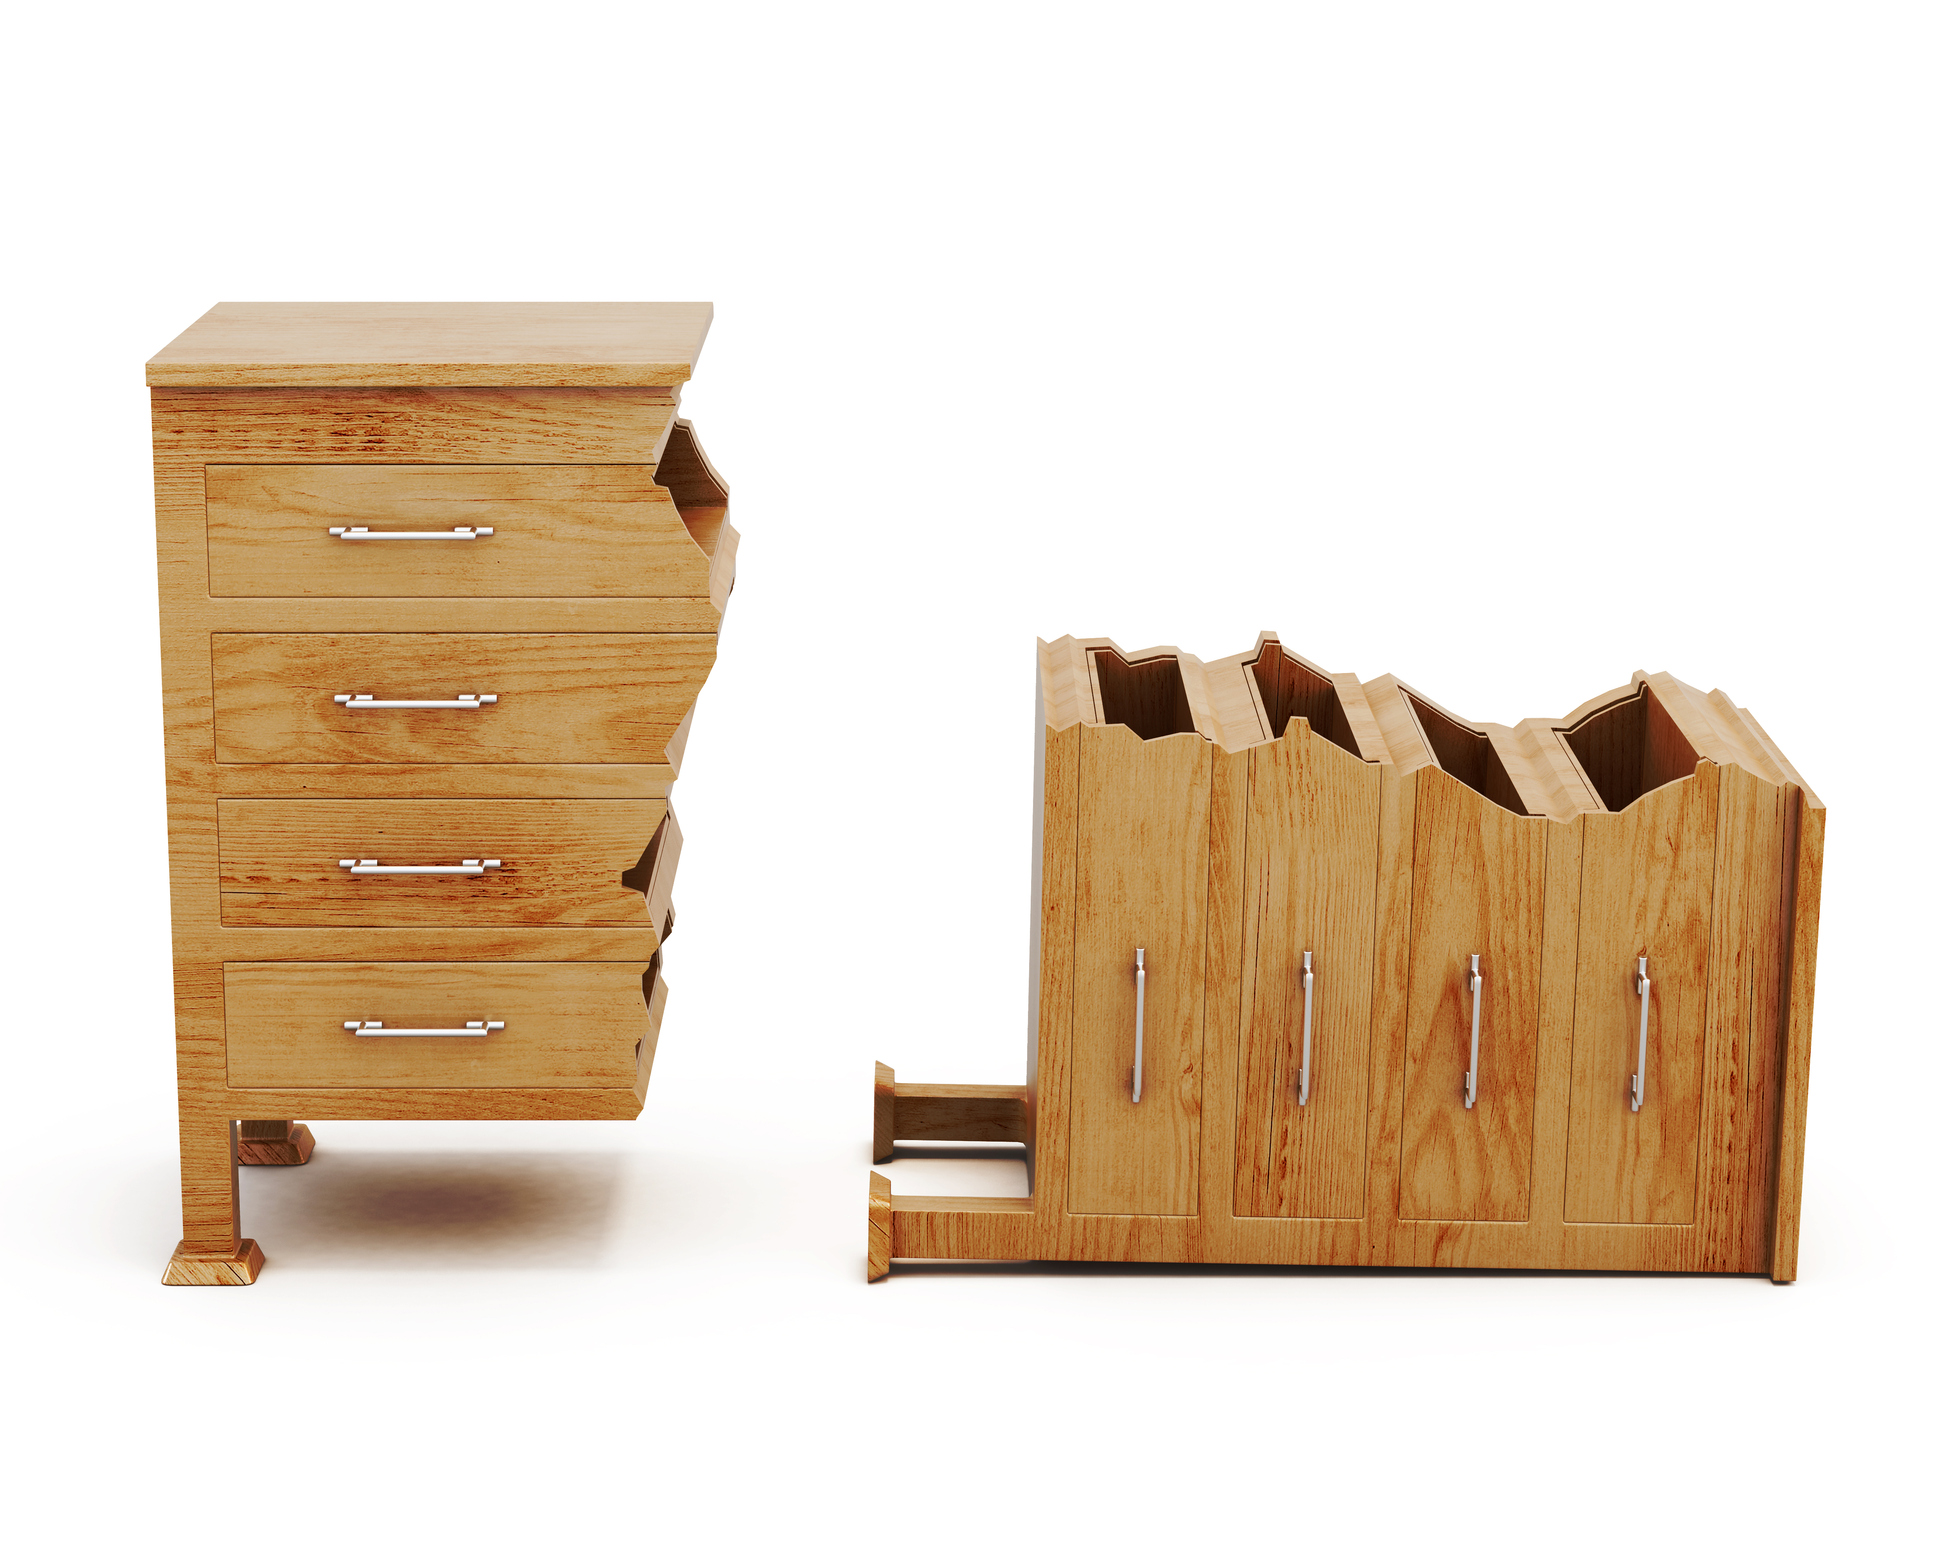 Image of a broken chest of draws